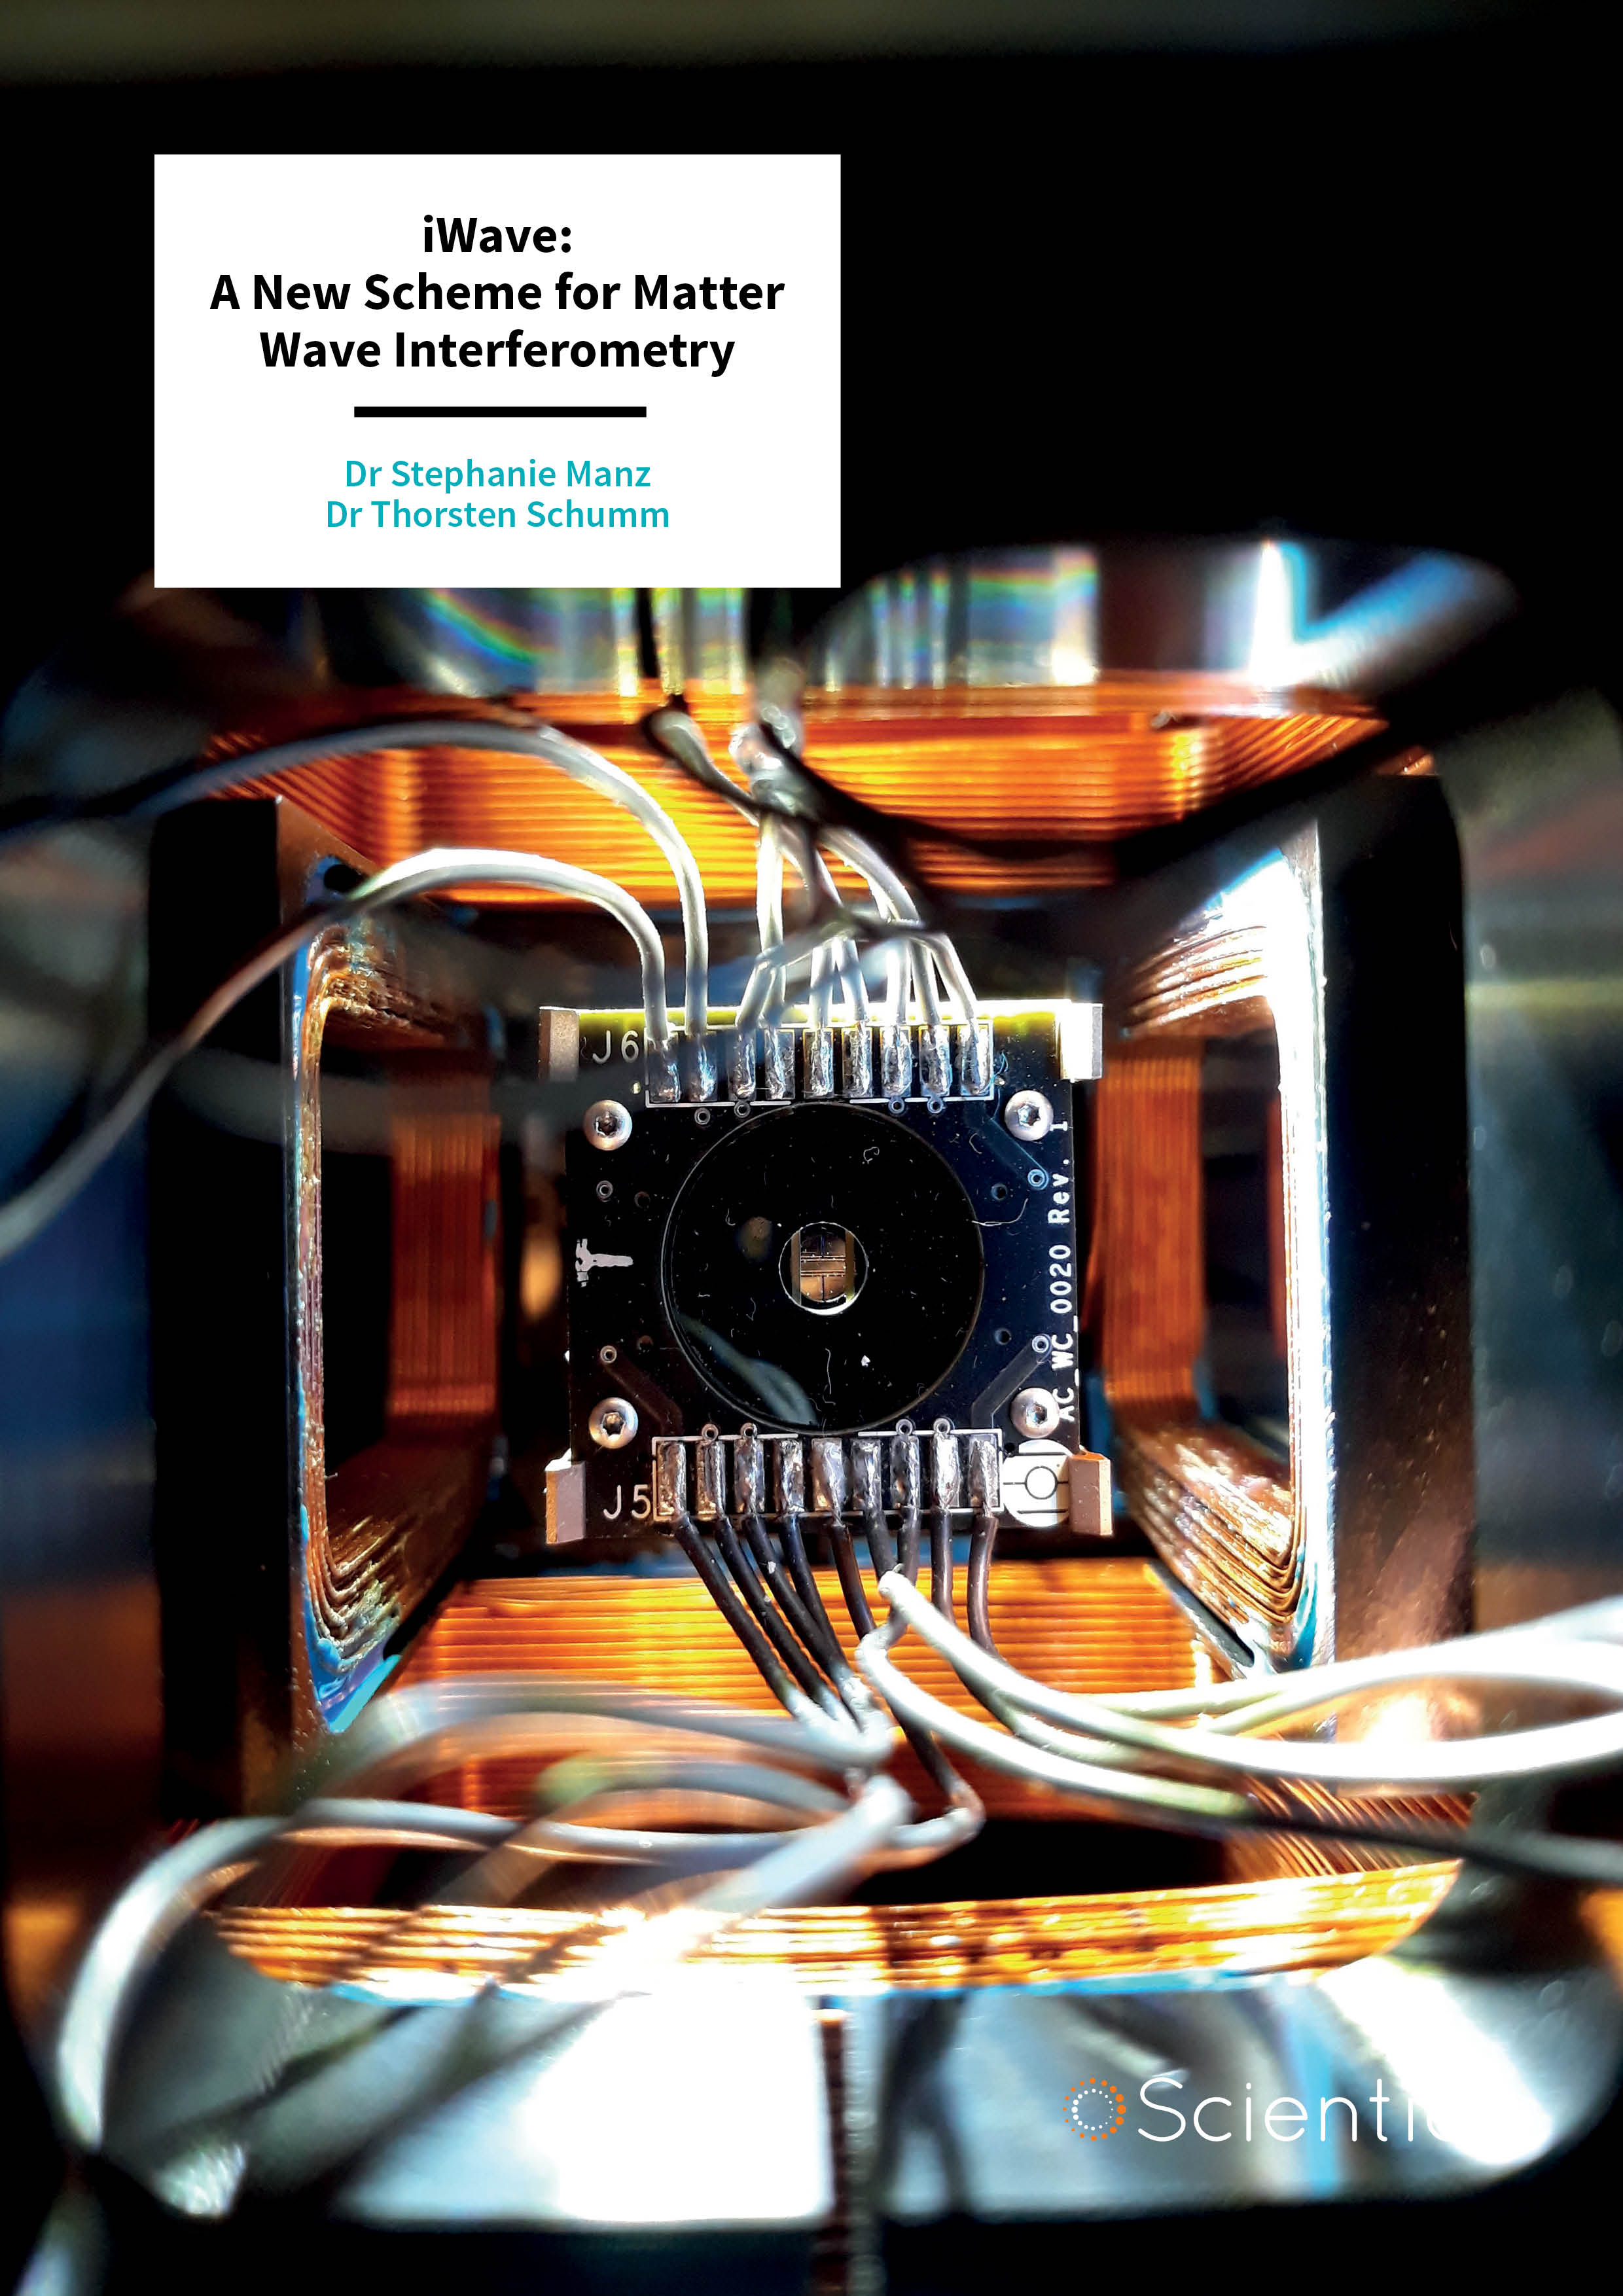 Dr Stephanie Manz and Dr Thorsten Schumm – iWave: A New Scheme for Matter Wave Interferometry